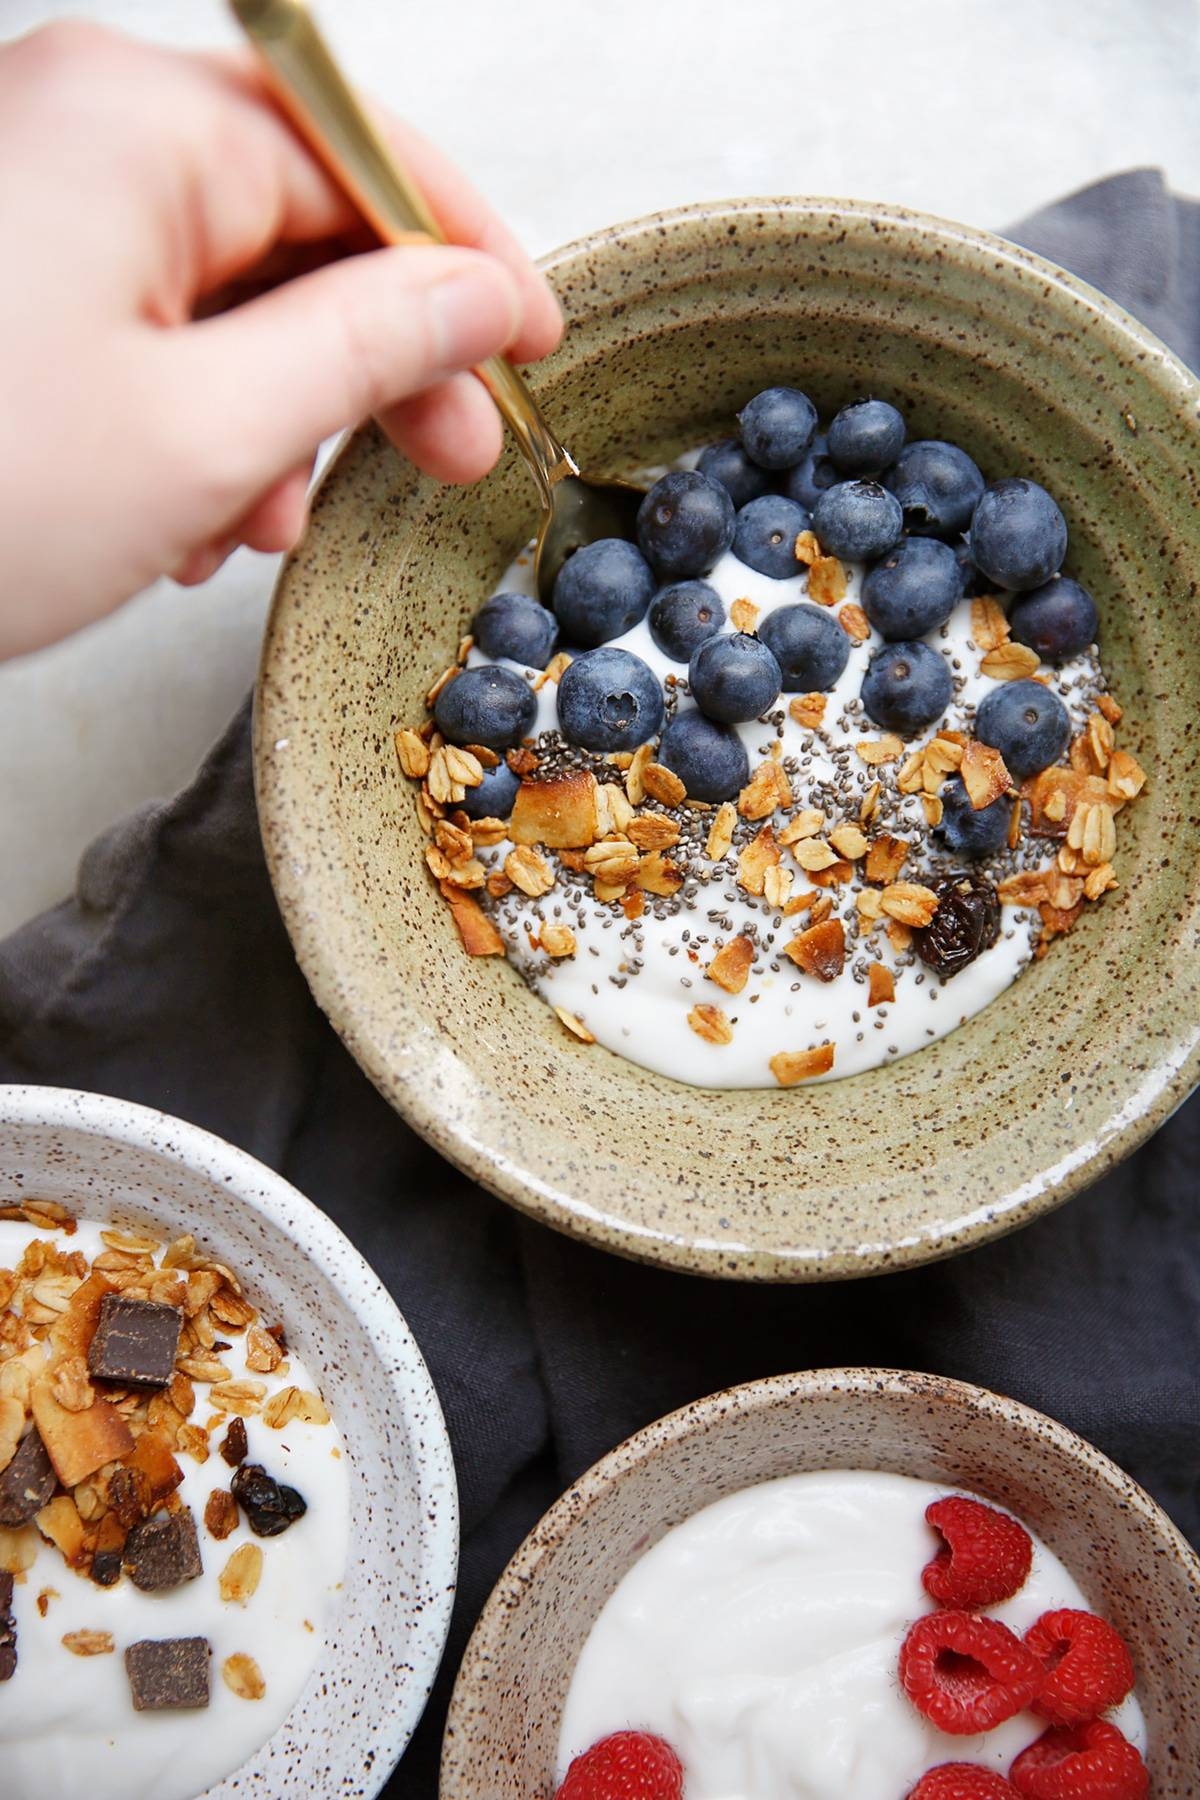 Is homemade granola bad for you